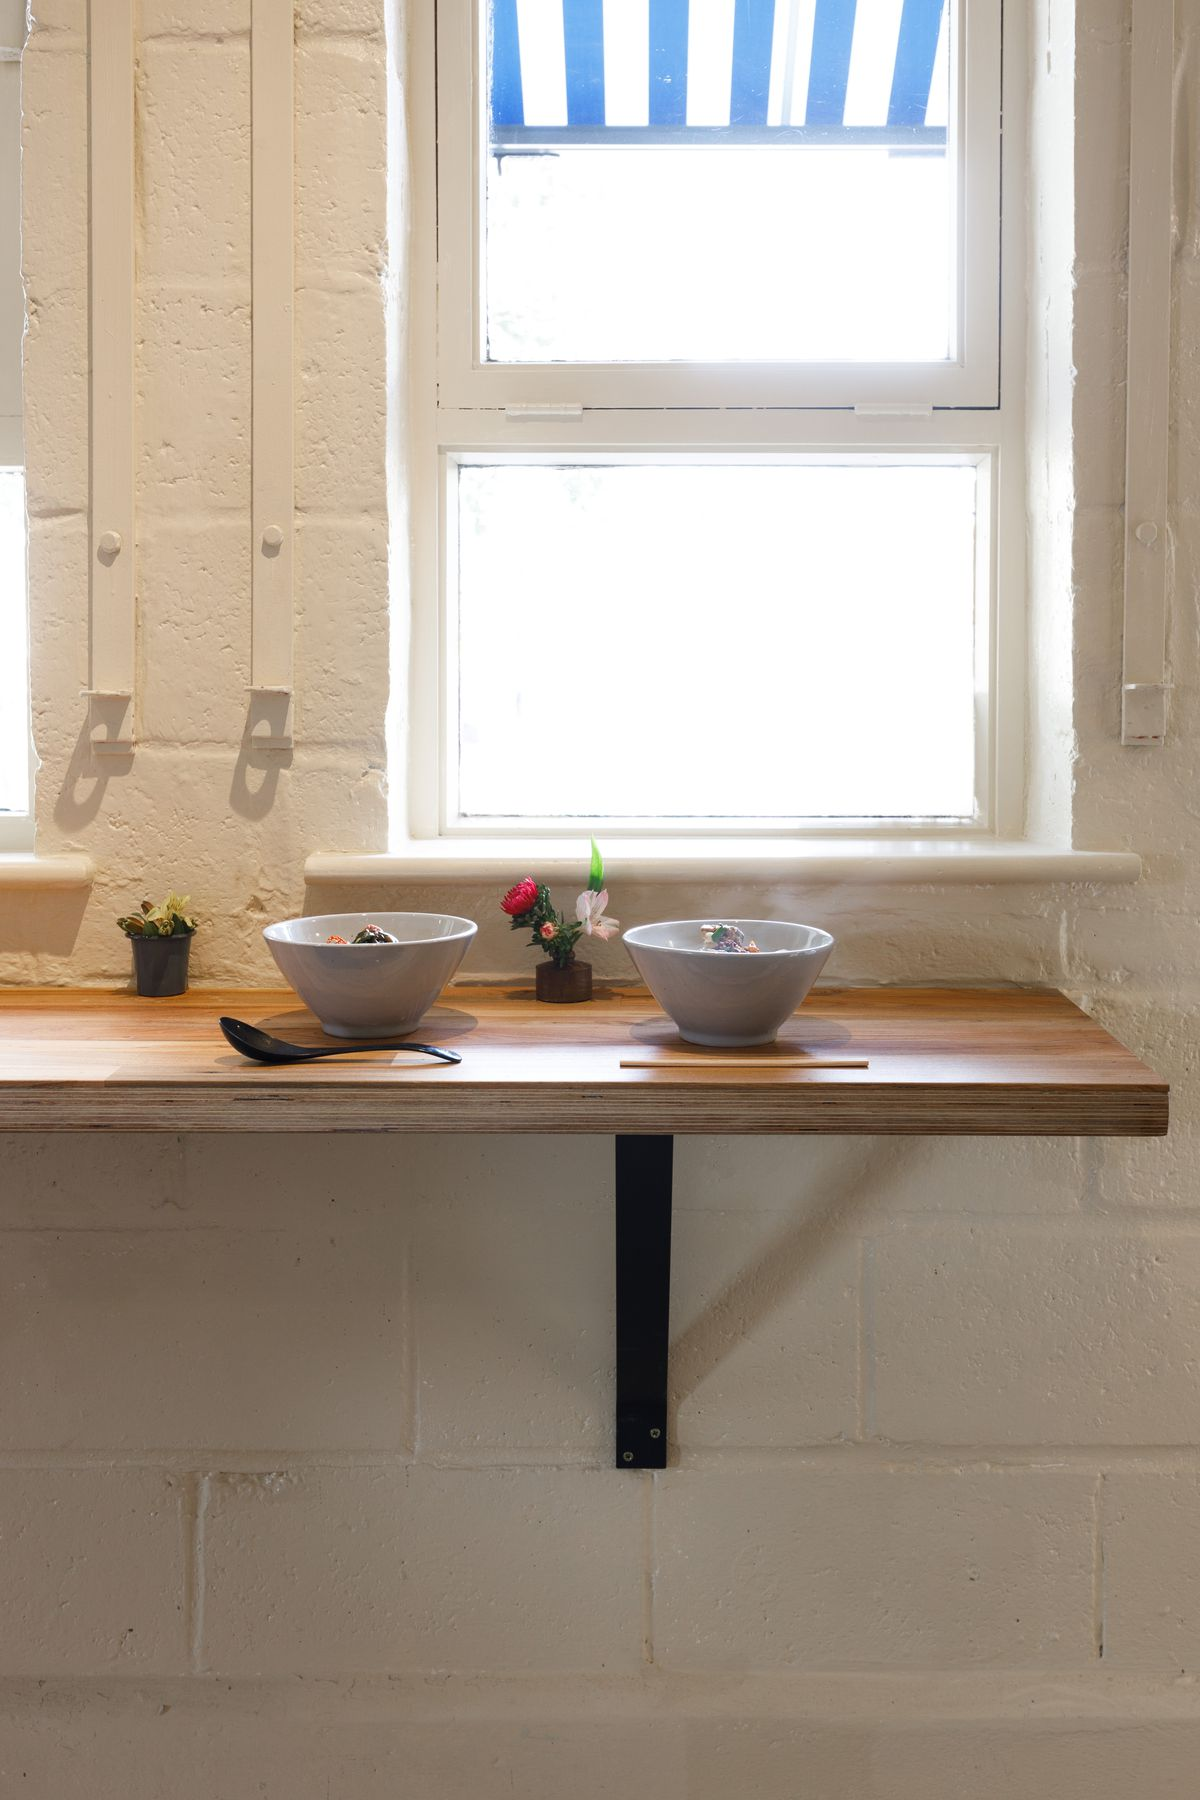 Two bowls of udon noodles on a wooden counter, secured to a white wall with a black metal bracket. Steam rises from the bowl to the right